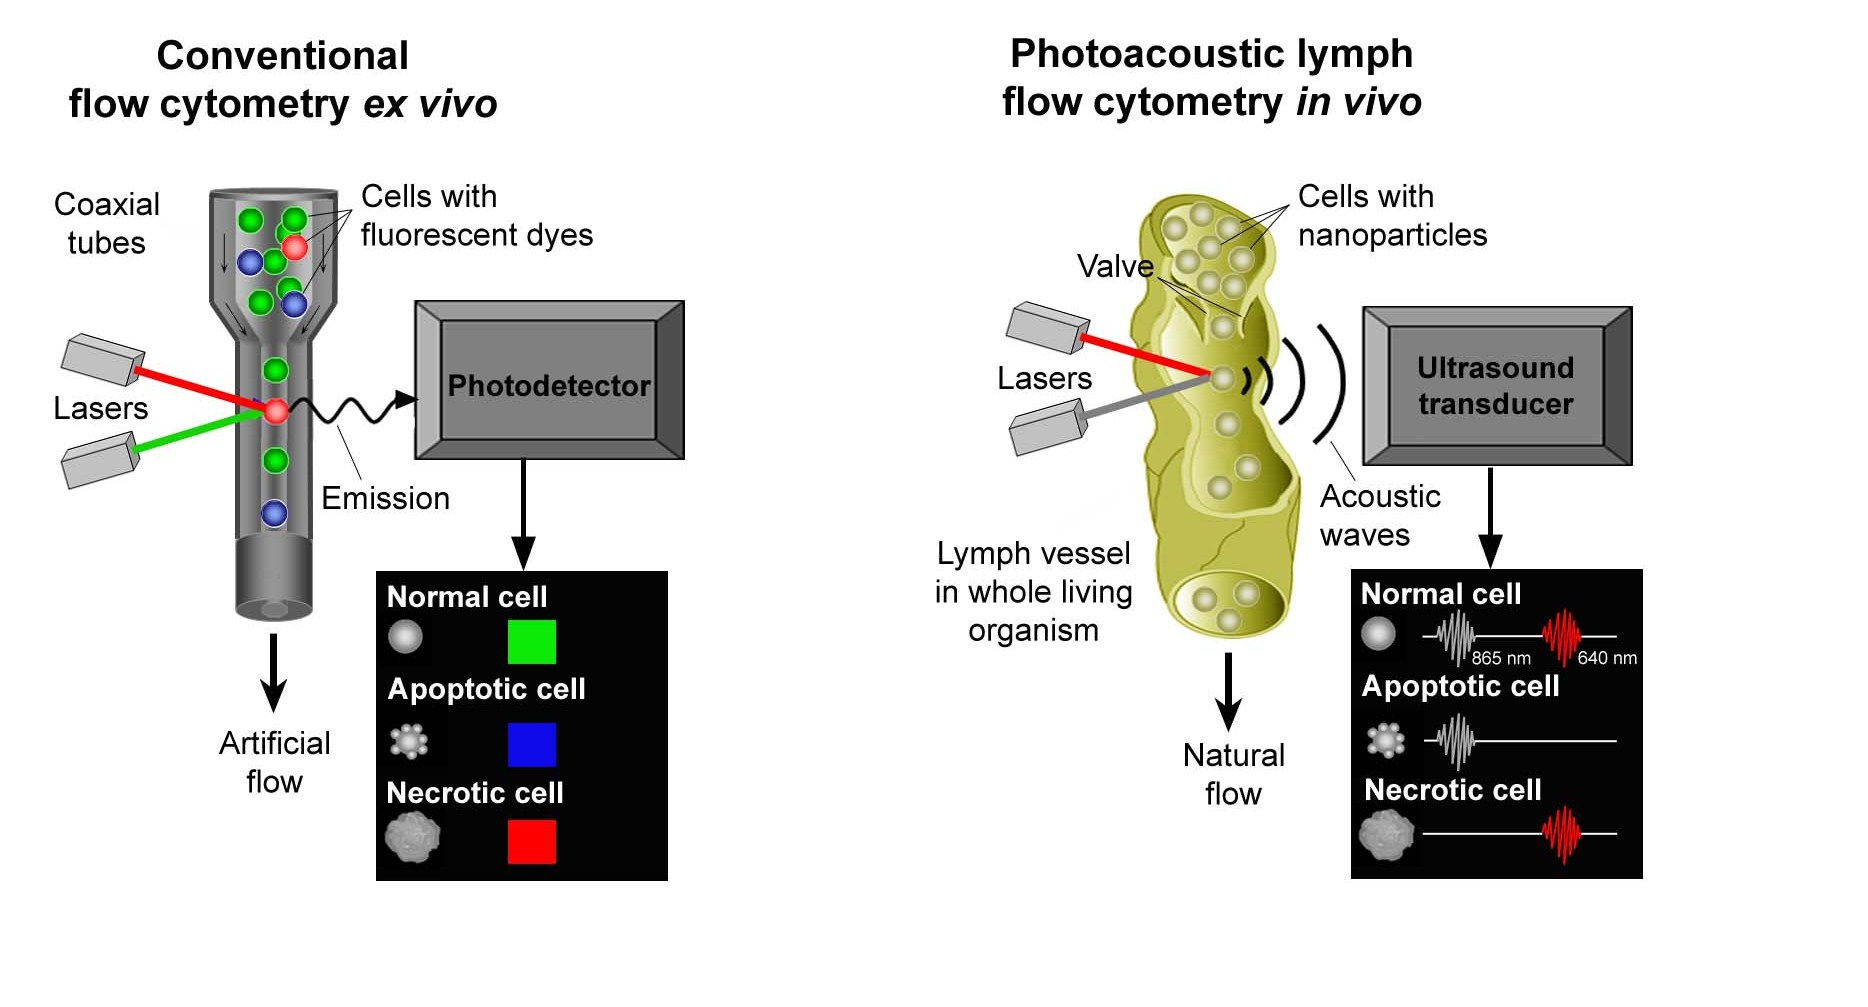 Photoacoustic flow cytometry is based on an optical effect discovered by Alexander Graham Bell and conventional flow cytometry (left), which simultaneously measures and analyzes single cells as they stream through a beam of light in an artificial tube. The technique takes advantage of lymphatic anatomy and physiology to count and identify individual cells in lymph flow (right).